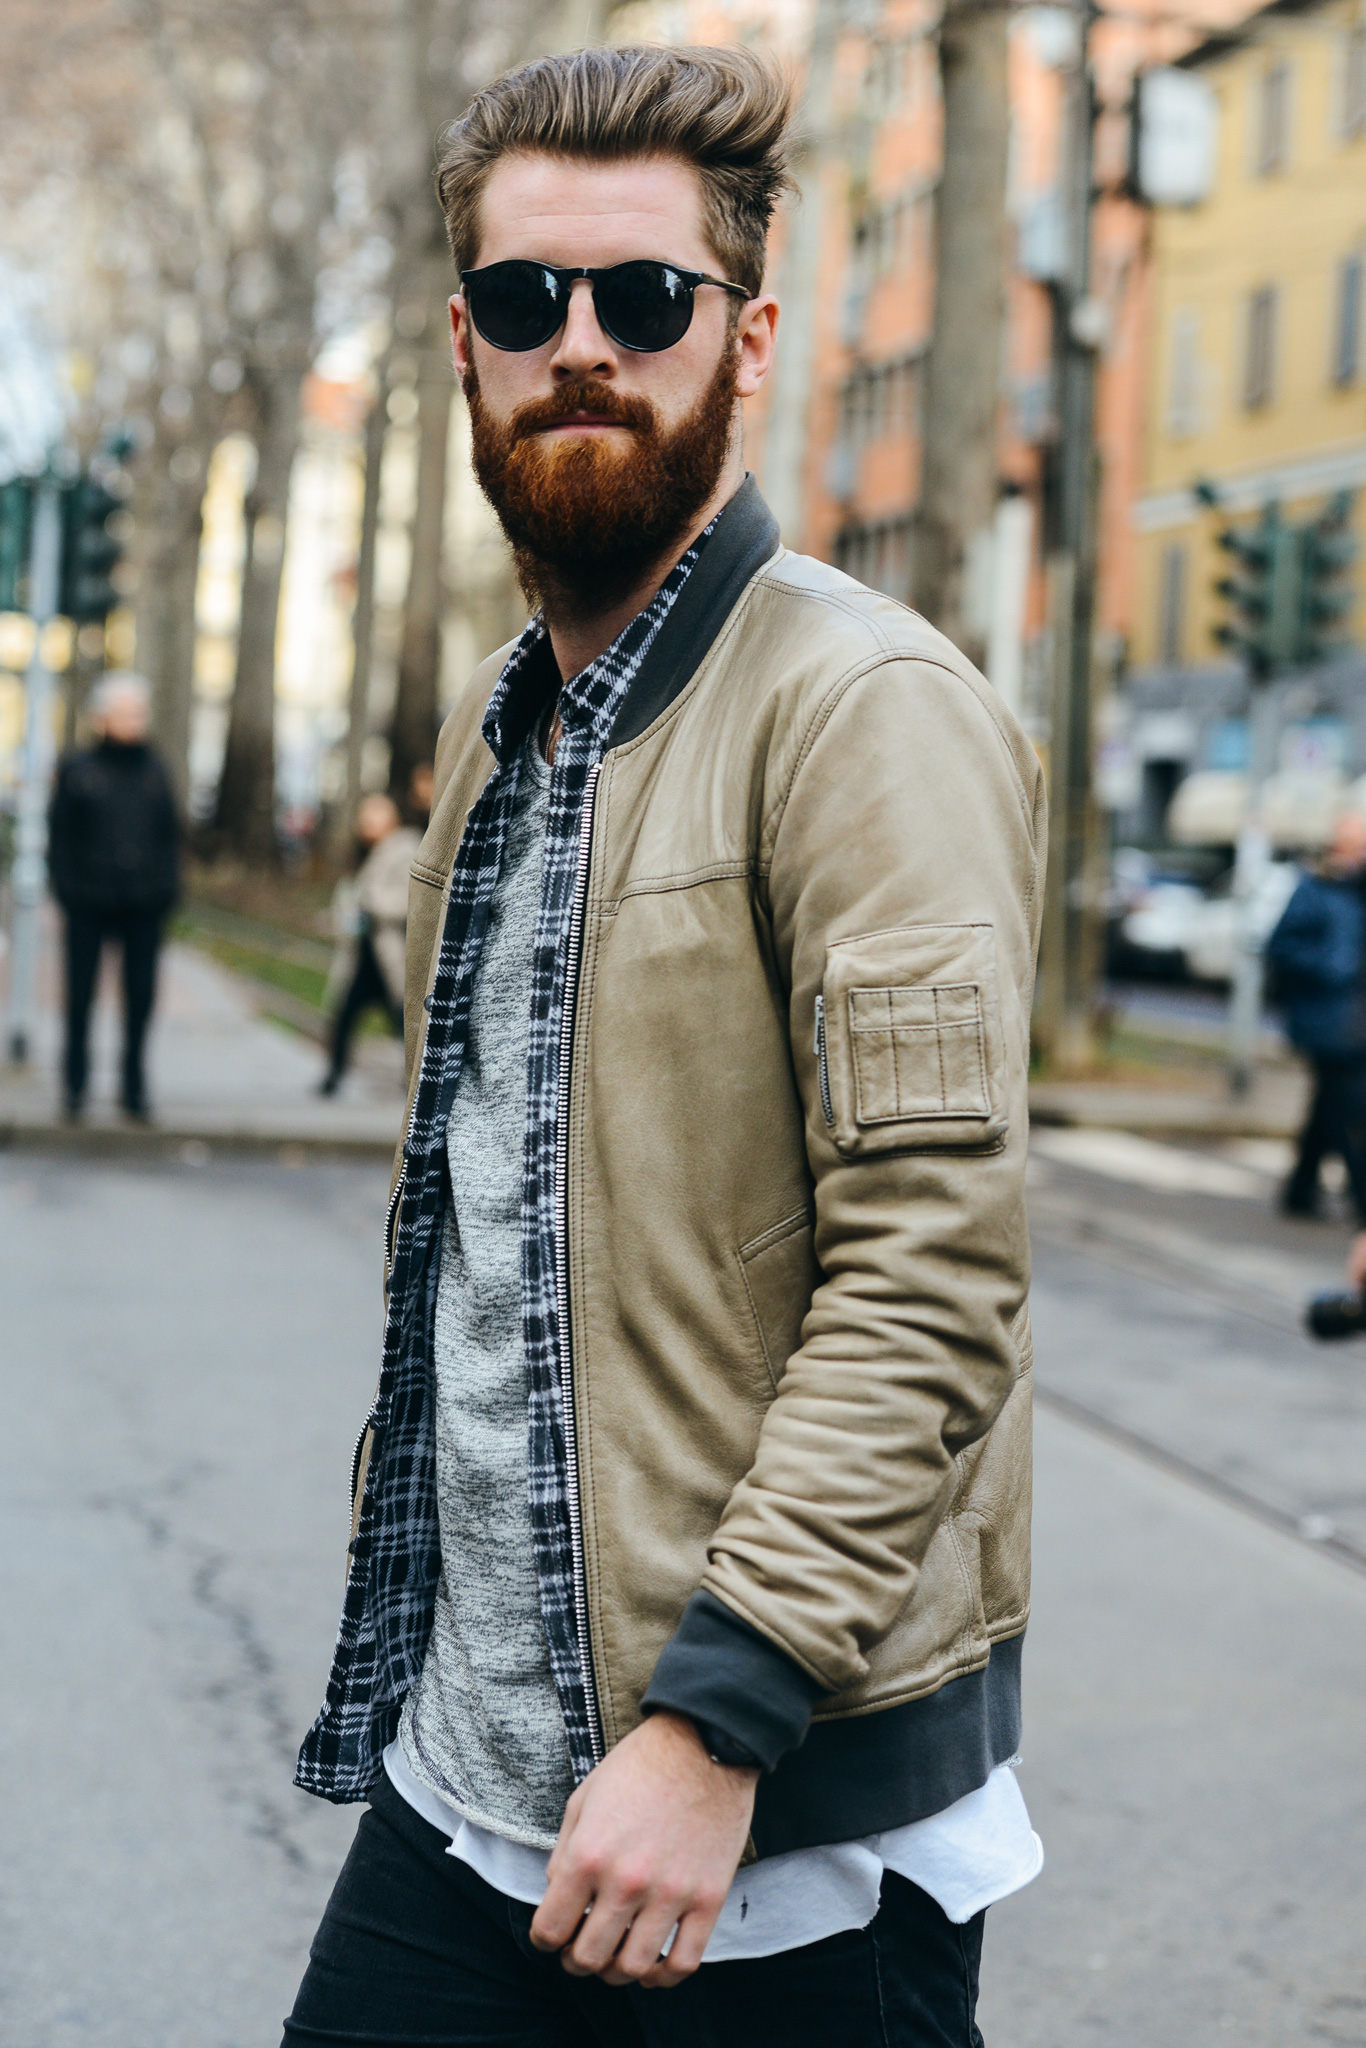 The Best Street Style Looks From Men's Fashion Week